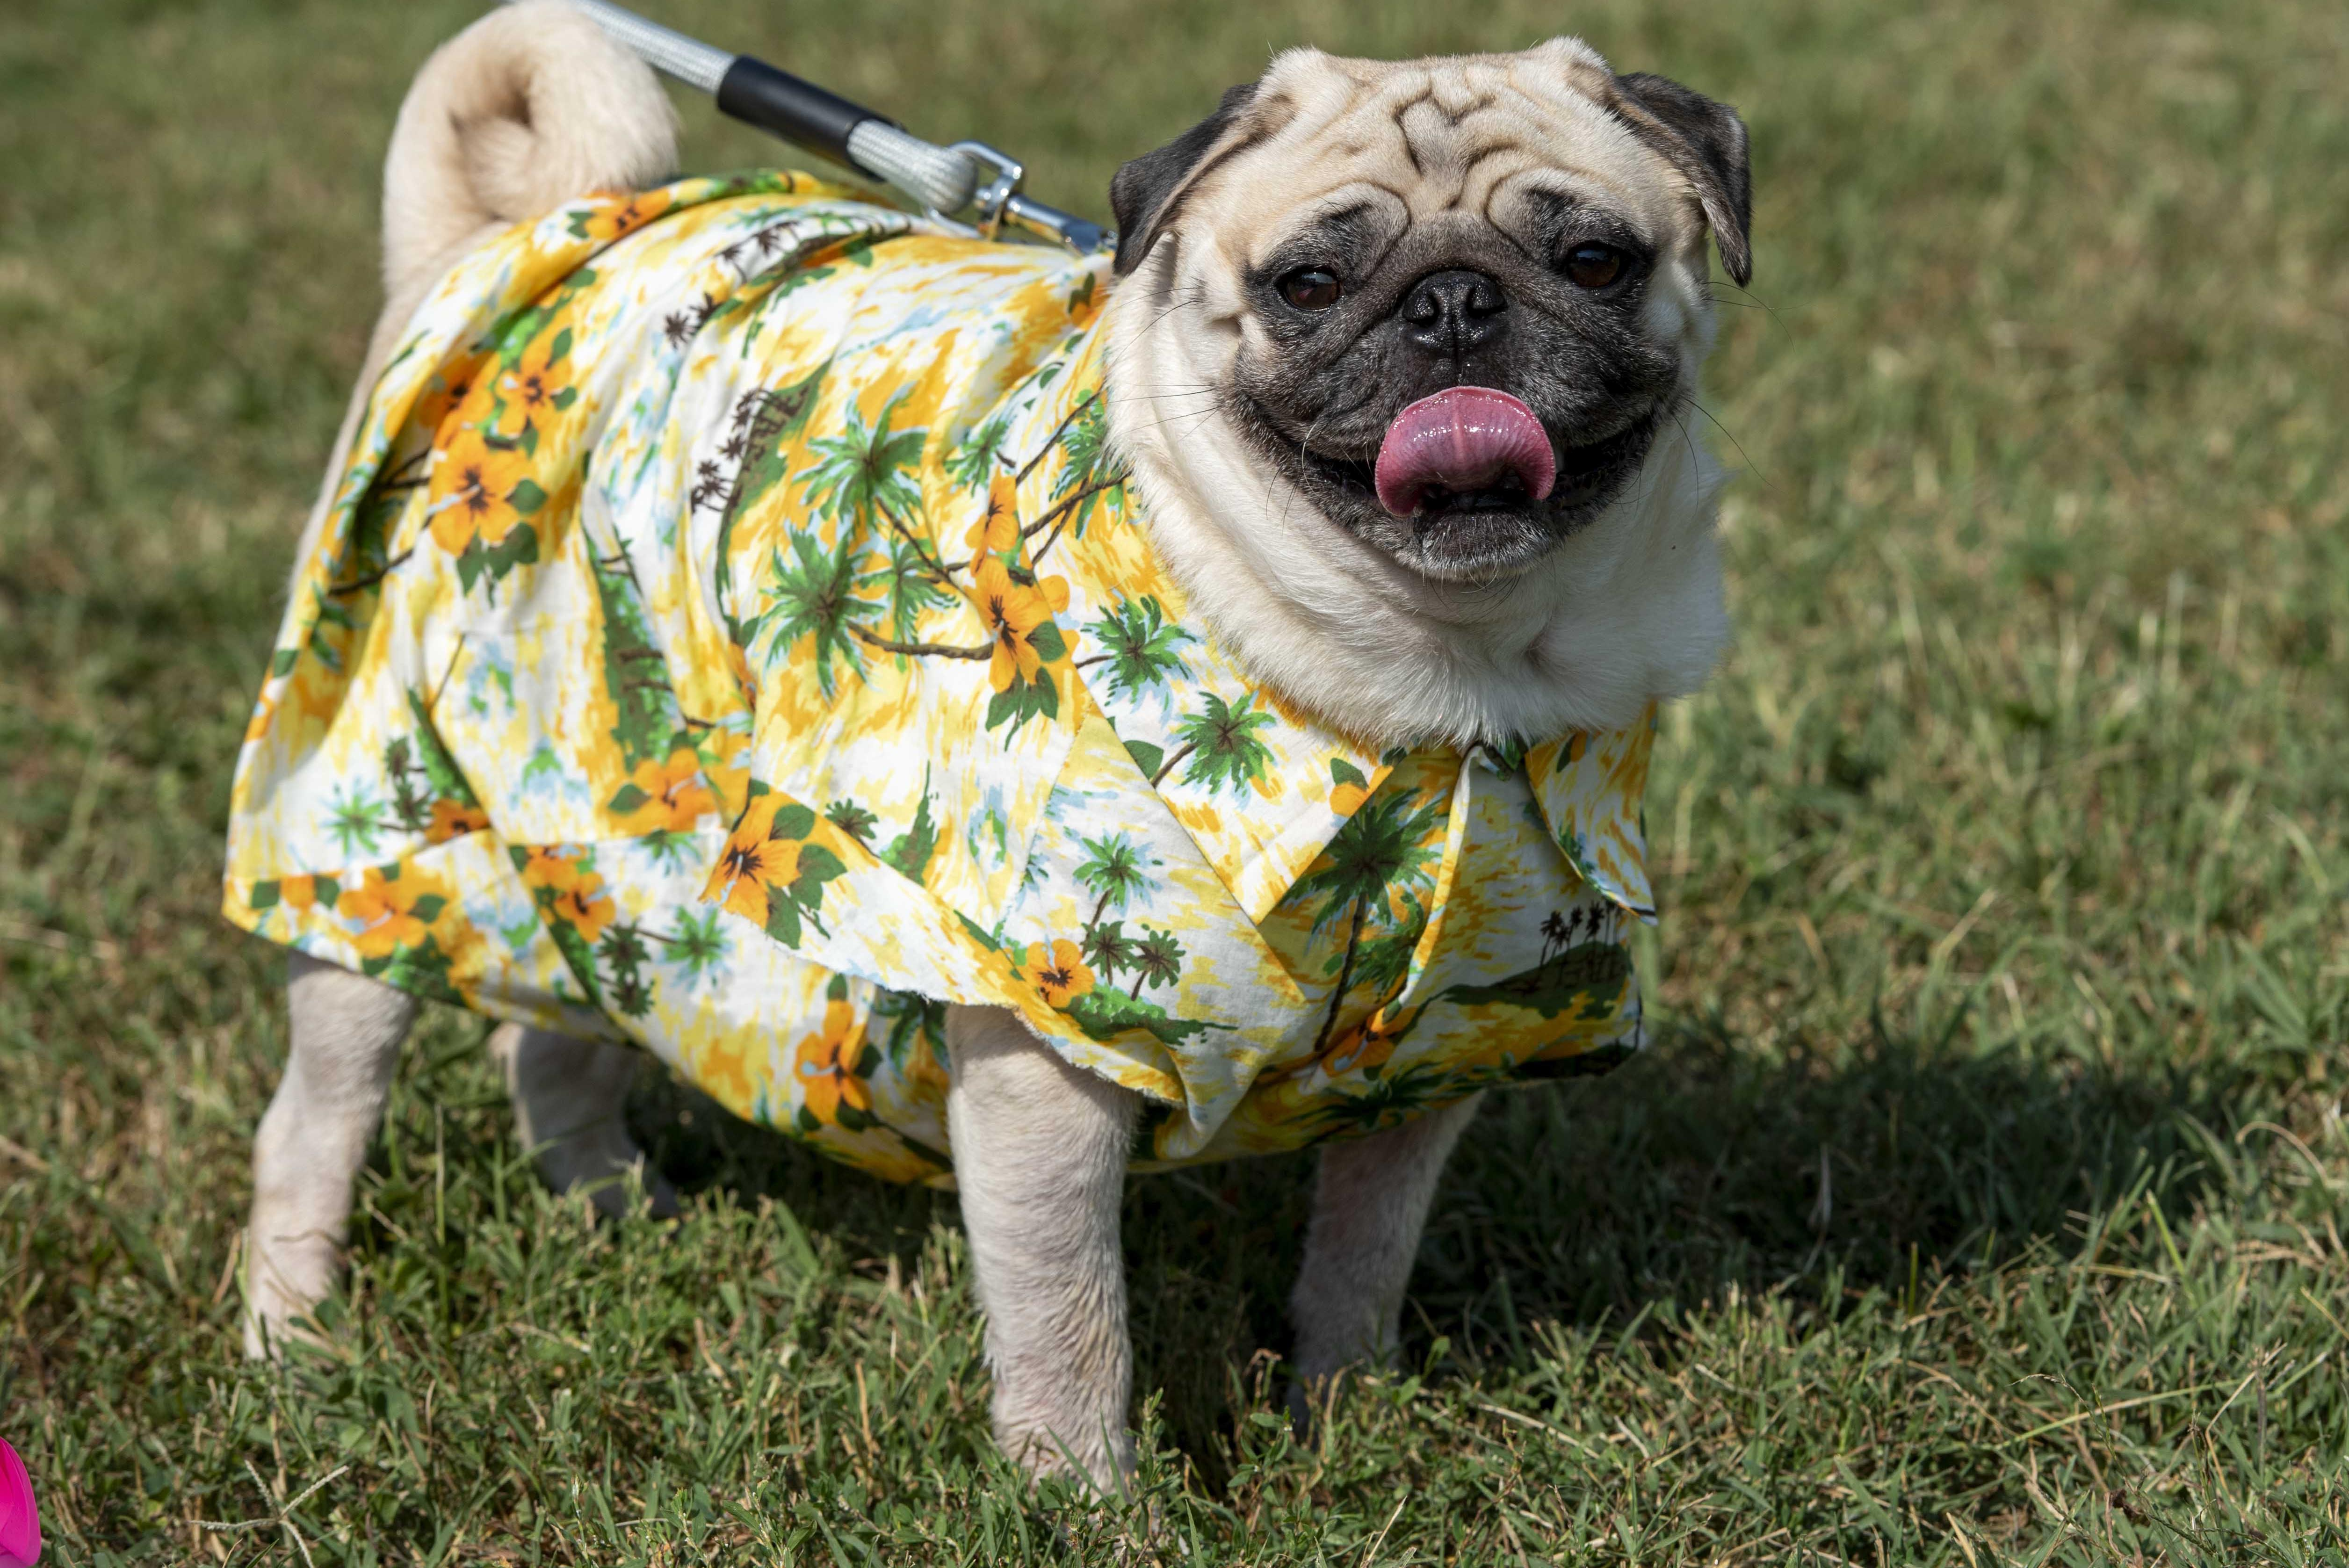 Photos: Wastin' away again at PugFest 2019